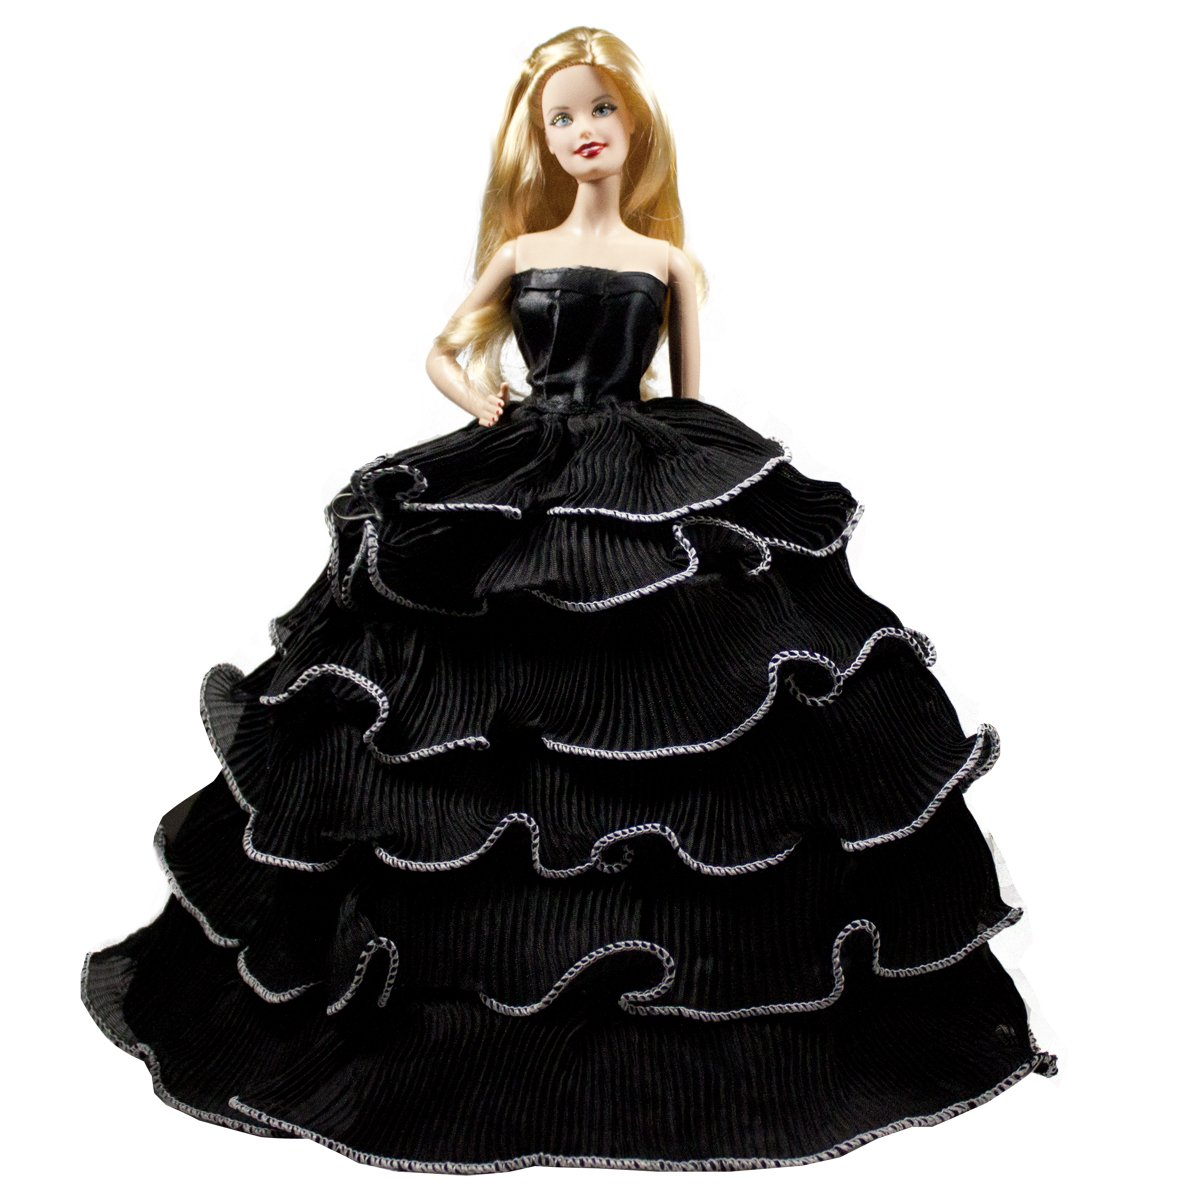 Barbie Romantic Ball Gown Strapless Layered Black Prom Gown Dress